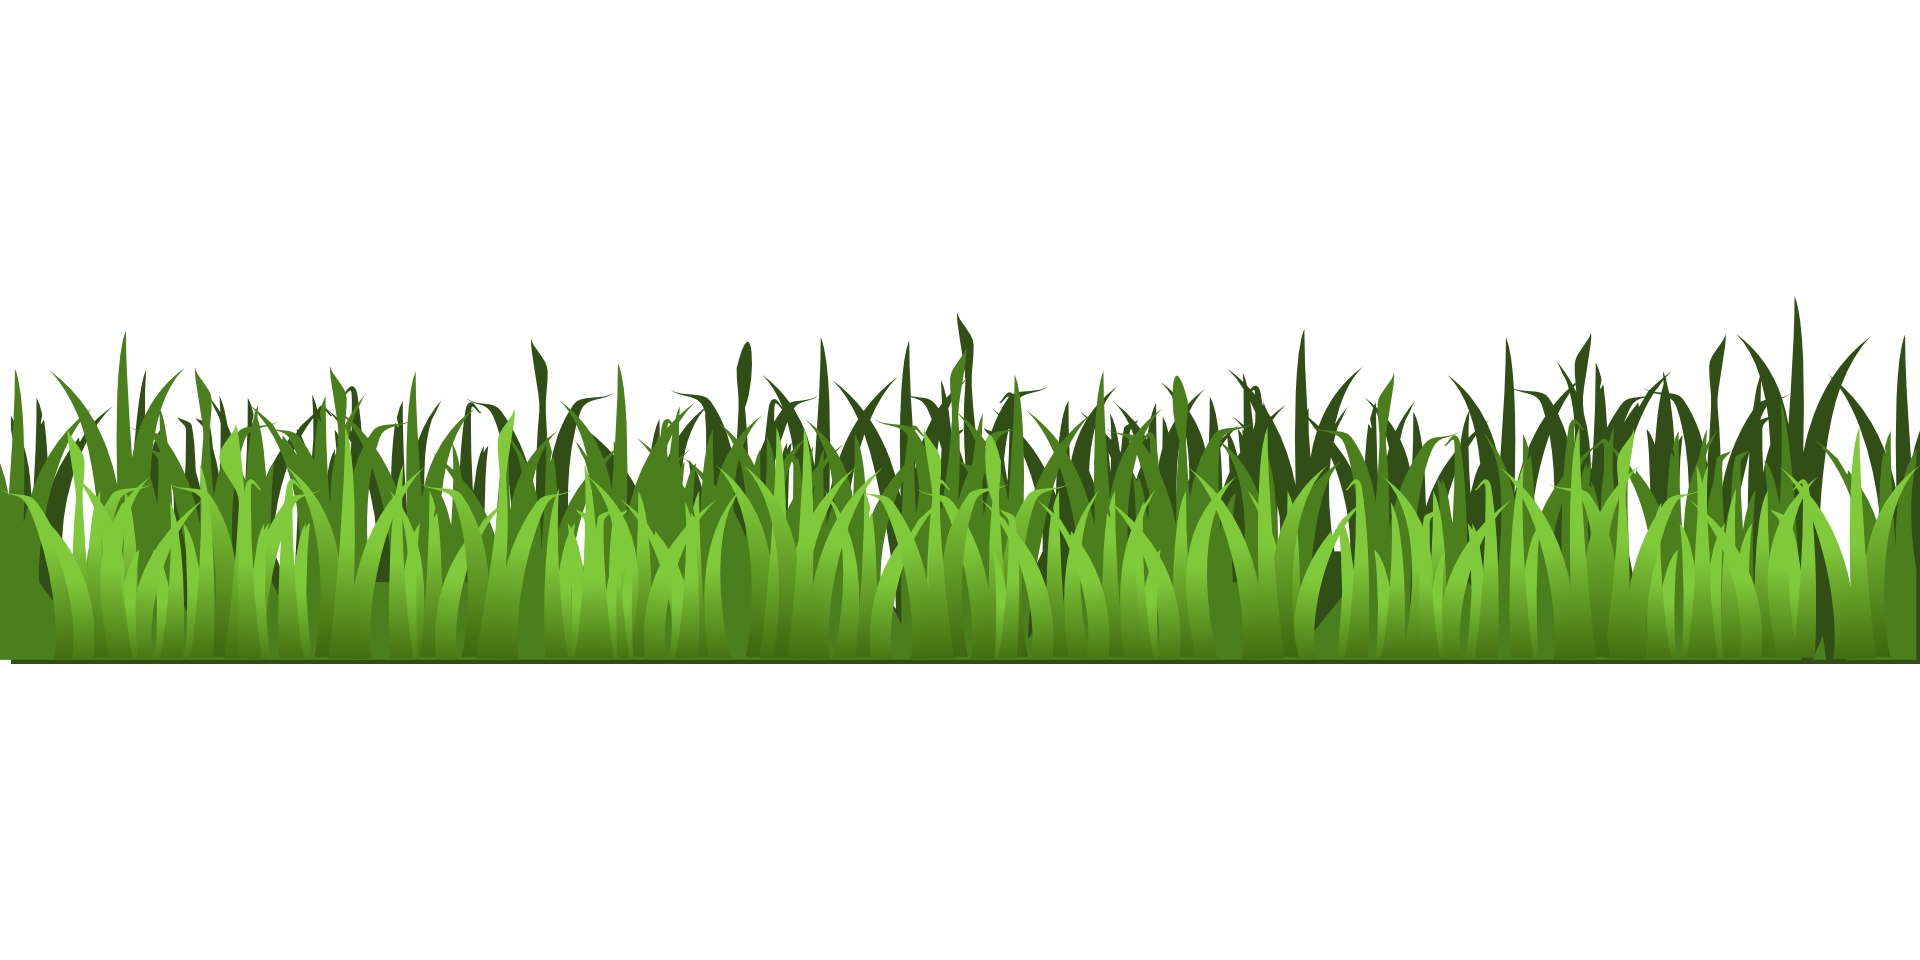 Graphic clipartfest meadow green. Football field grass clipart